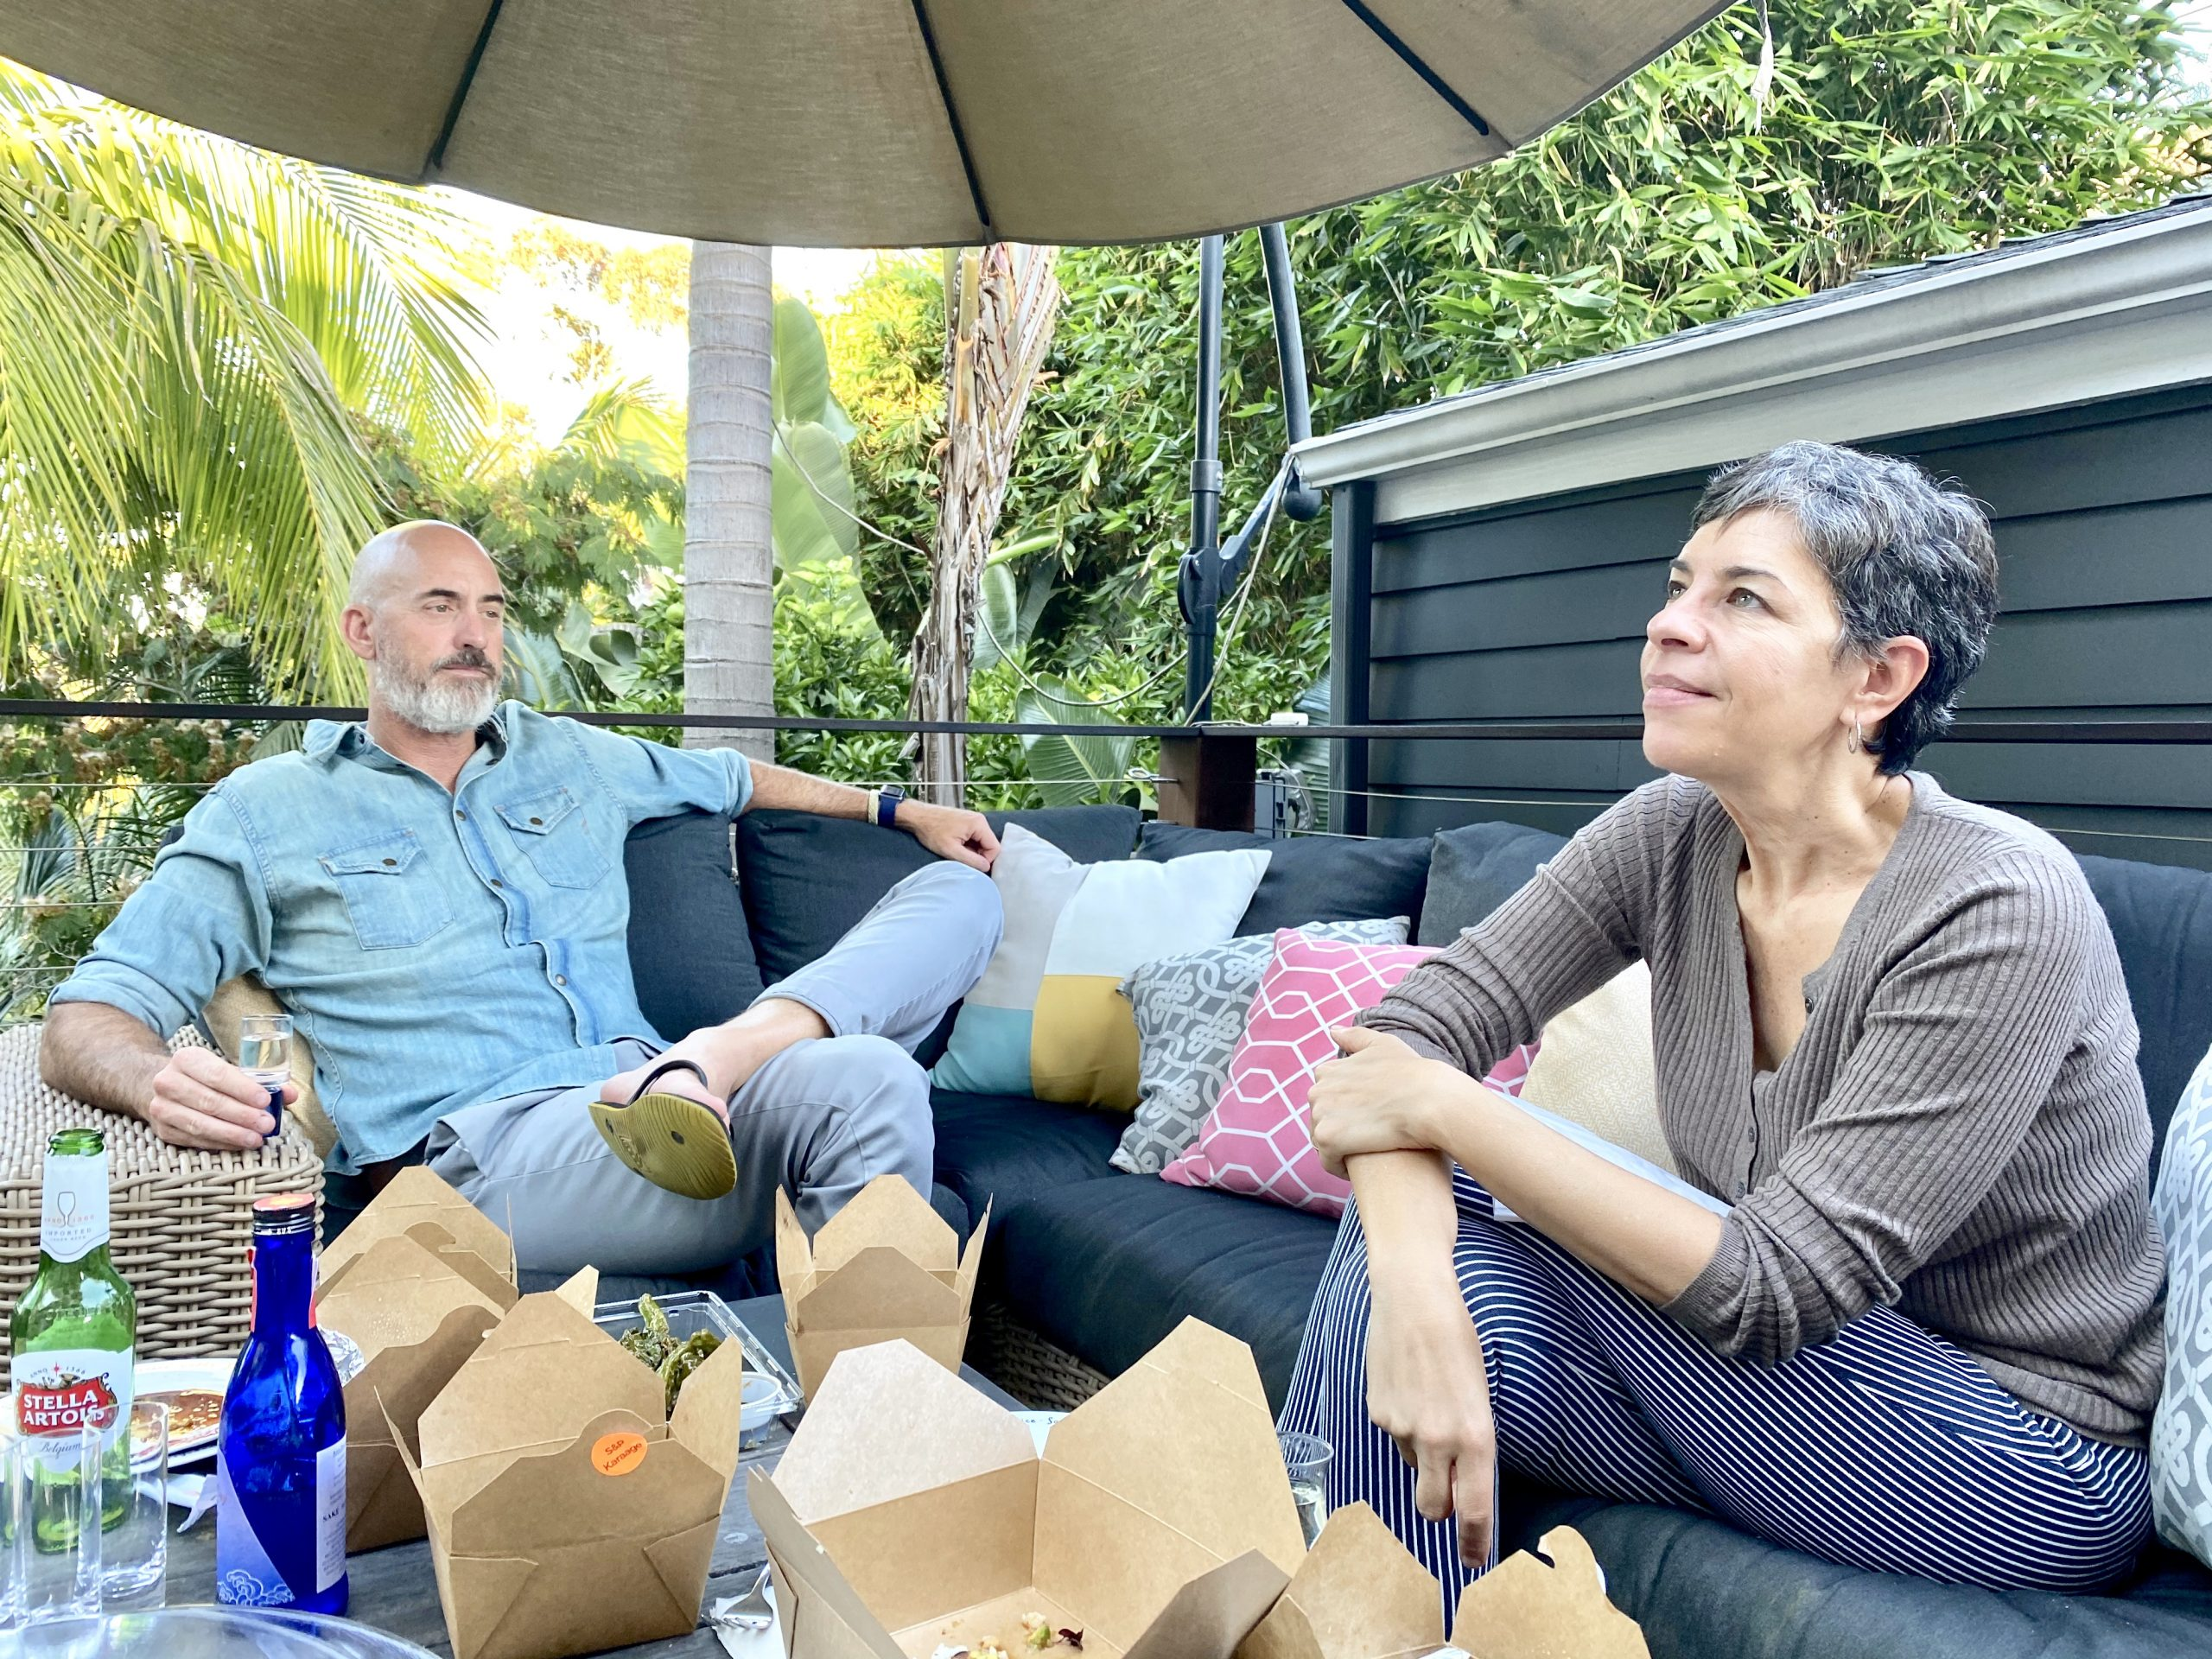 man and women enjoy picnic outside on deck with sake from Tippsy Sake